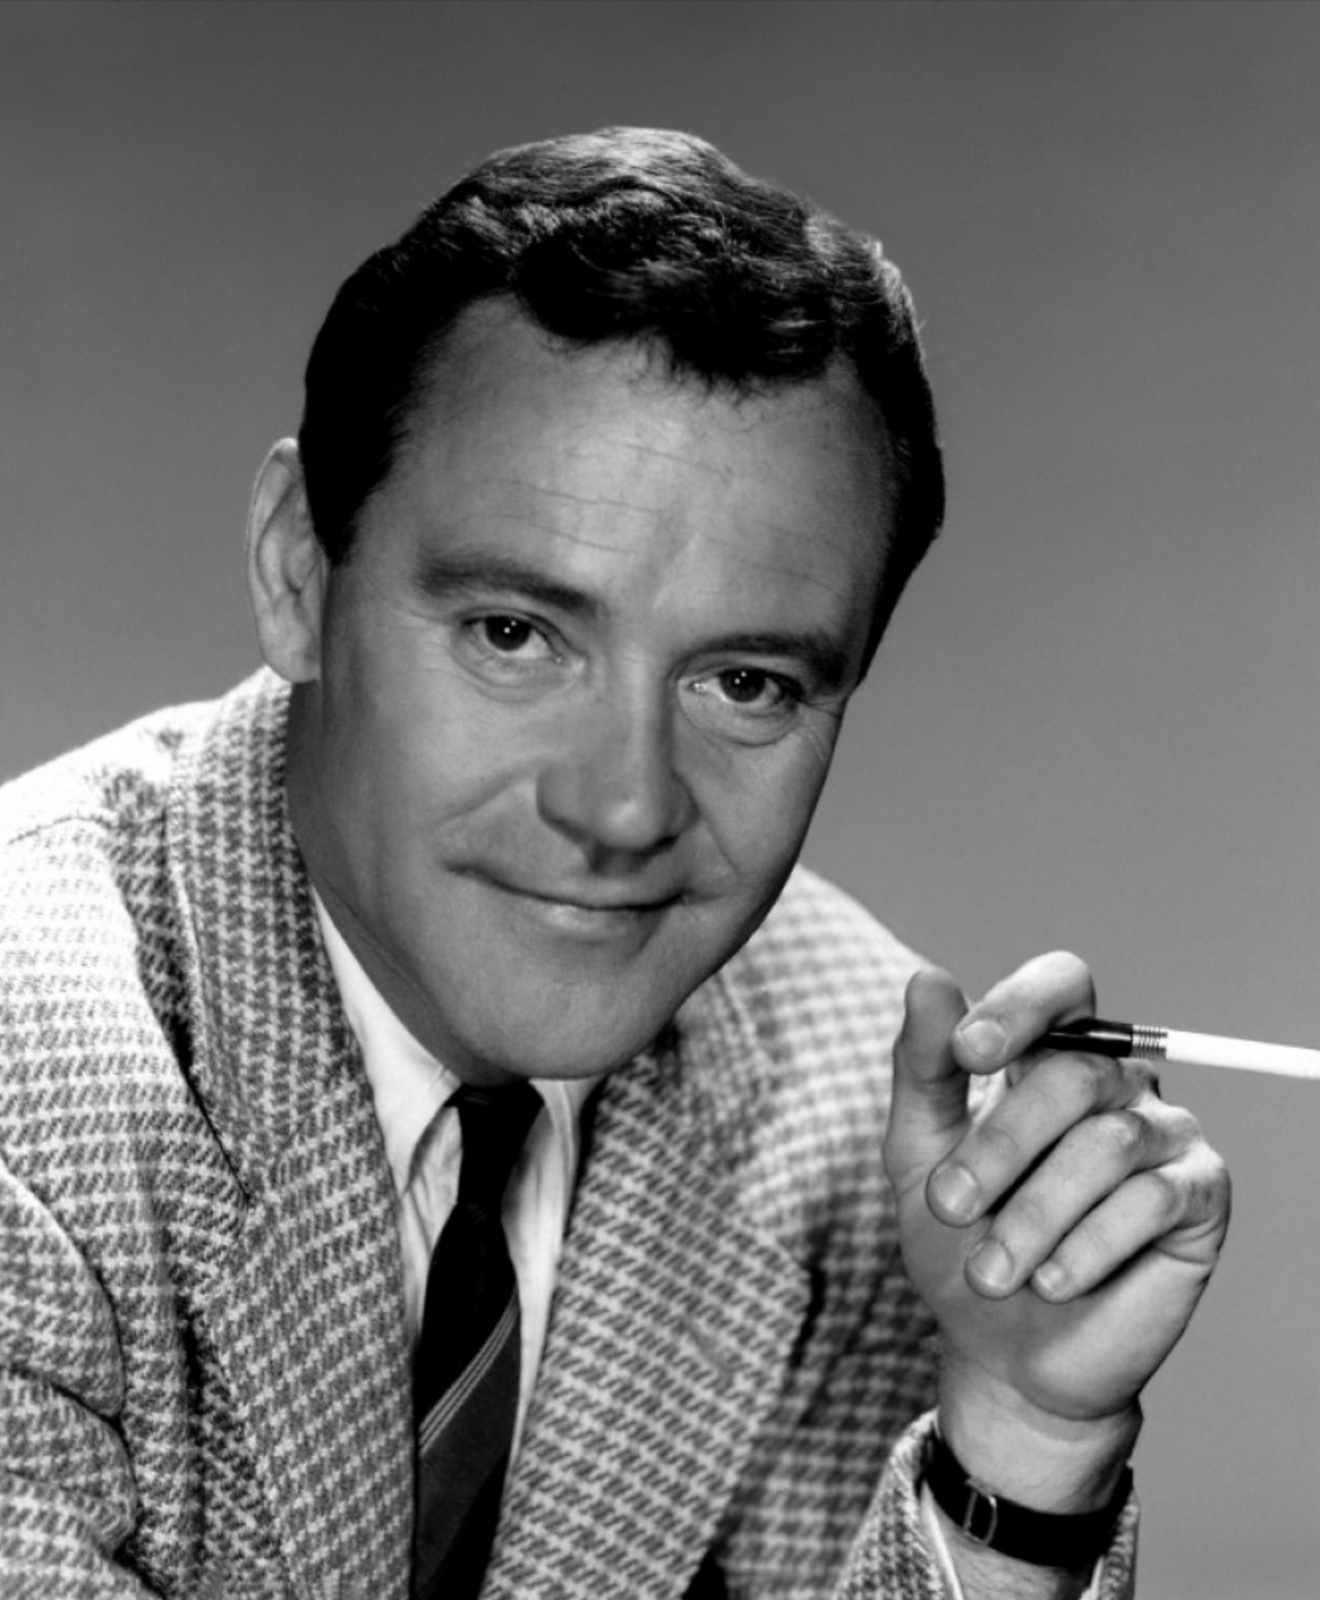 jack lemmon wikijack lemmon films, jack lemmon actor, jack lemmon oscar, jack lemmon some like it hot, jack lemmon wiki, jack lemmon best movies, jack lemmon gif, jack lemmon terry thomas film, jack lemmon piano, jack lemmon biography, jack lemmon movies, jack lemmon and felicia farr, jack lemmon son, jack lemmon marilyn monroe film, jack lemmon impression, jack lemmon and his wife, jack lemmon quotes, jack lemmon kevin spacey, jack lemmon tony curtis, jack lemmon top movies